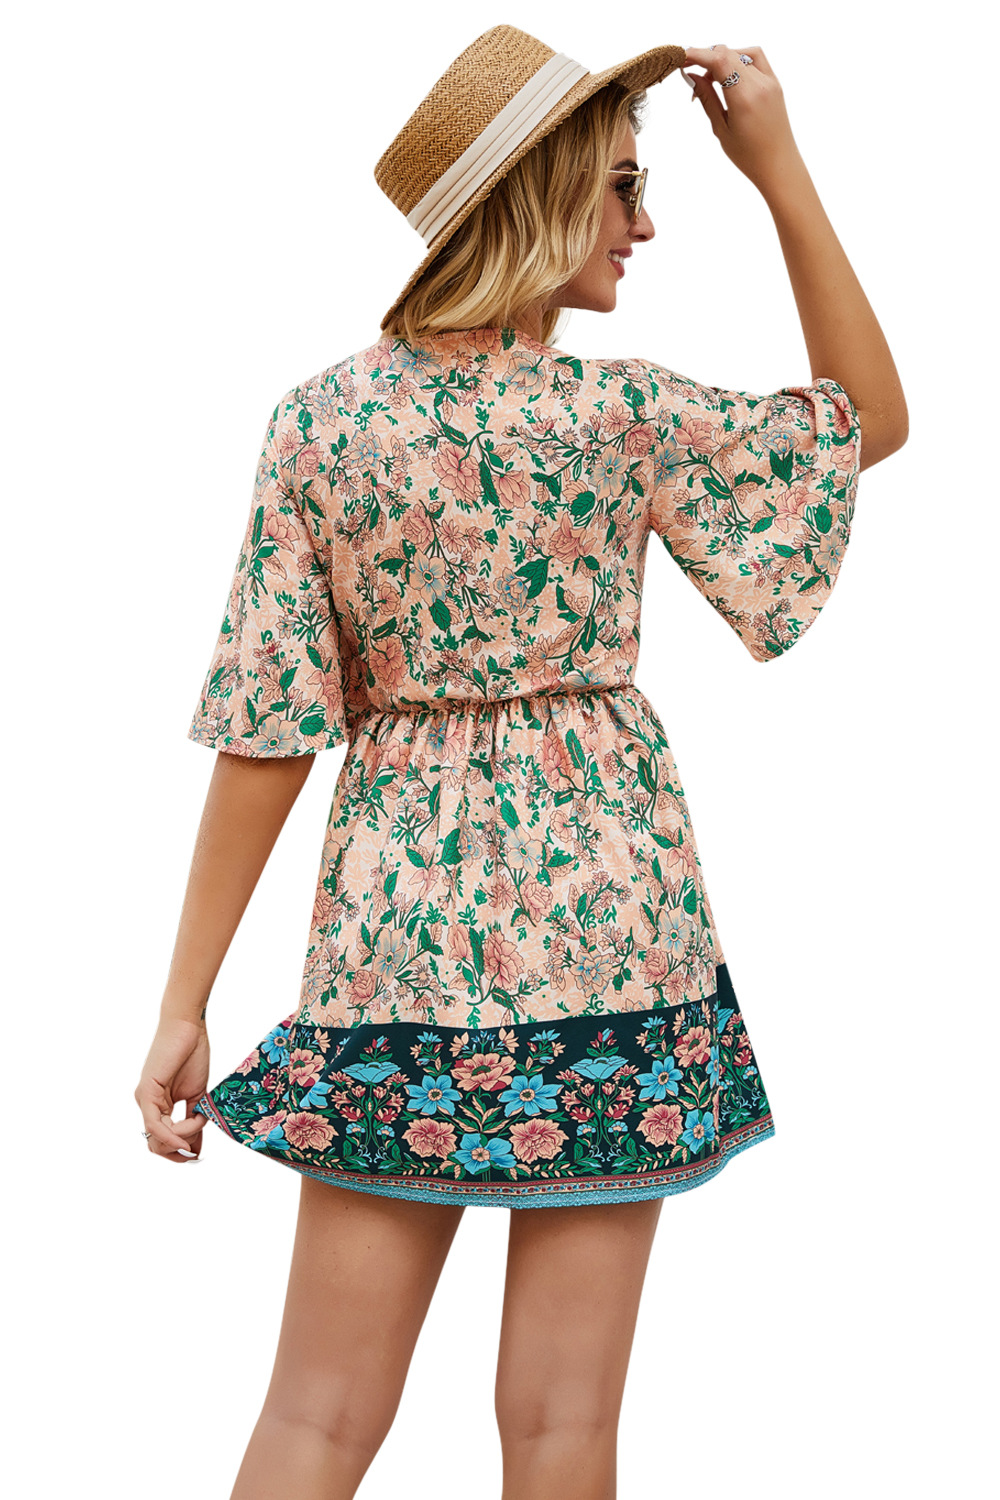 Spring Summer new bohemian resort-style print lace-up V-neck cropped short dress NSDF429